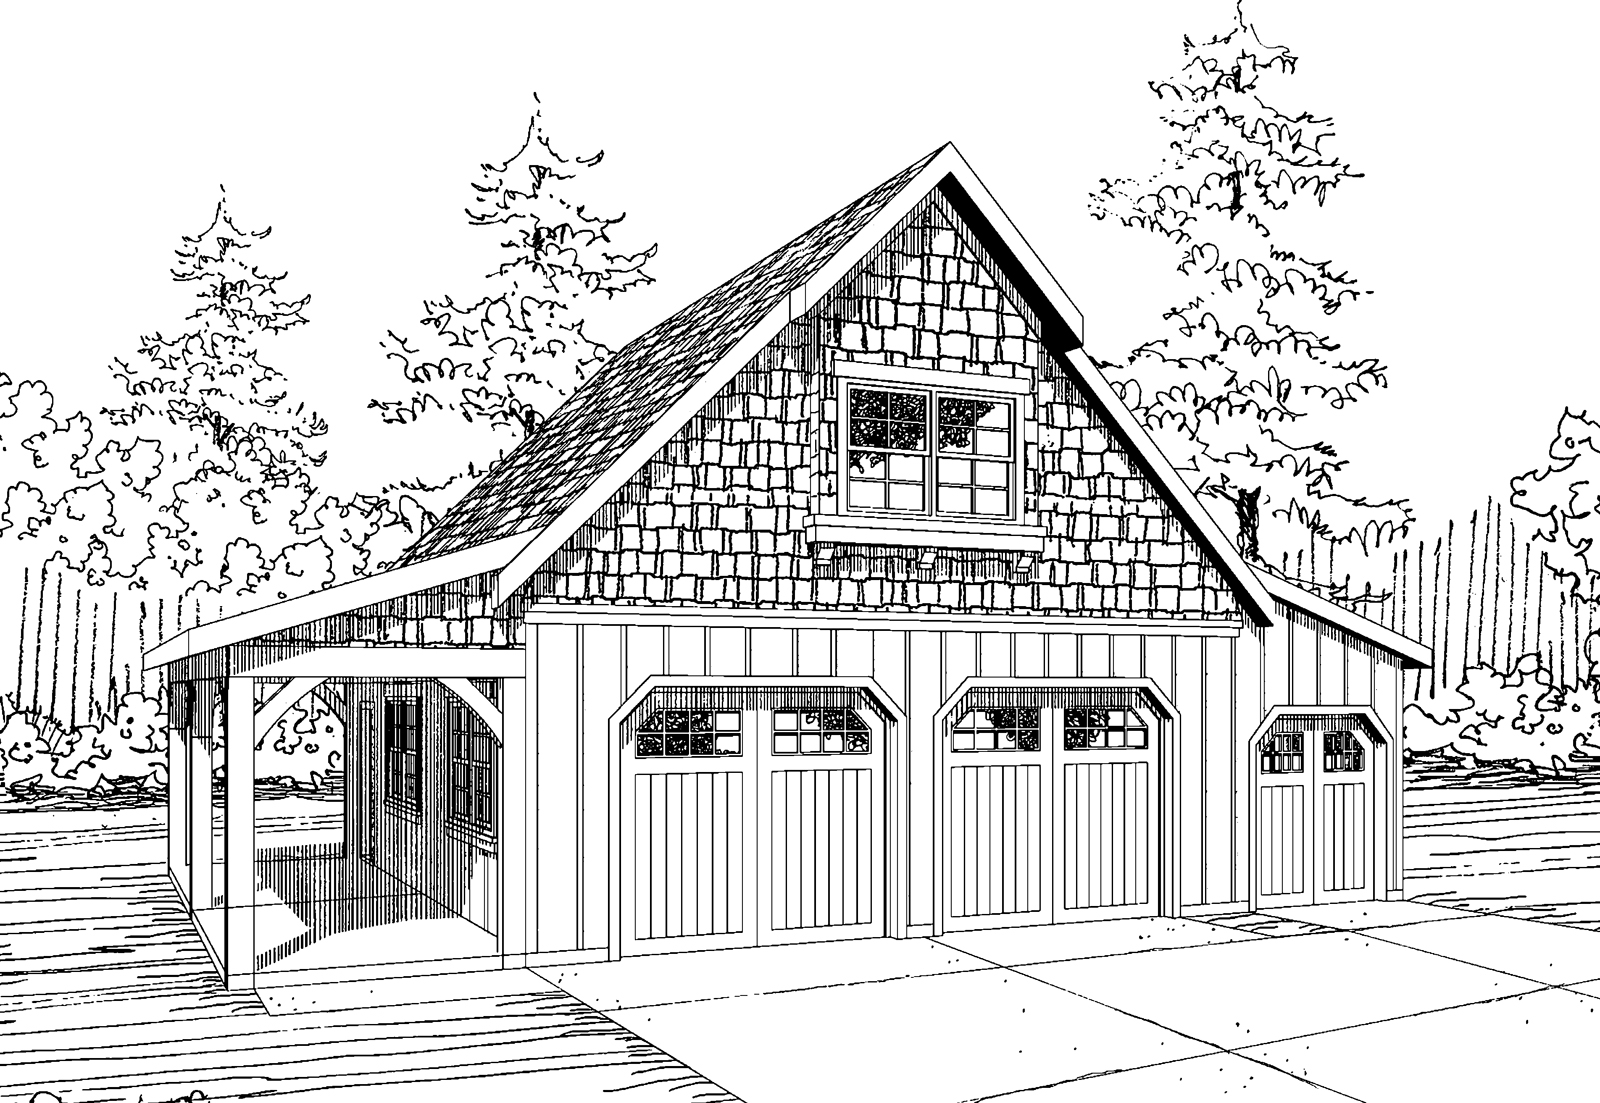 rustic garage plans two car garage with attic truss roof plan delightful 2 car garage apartment plans 6 20100artjpg